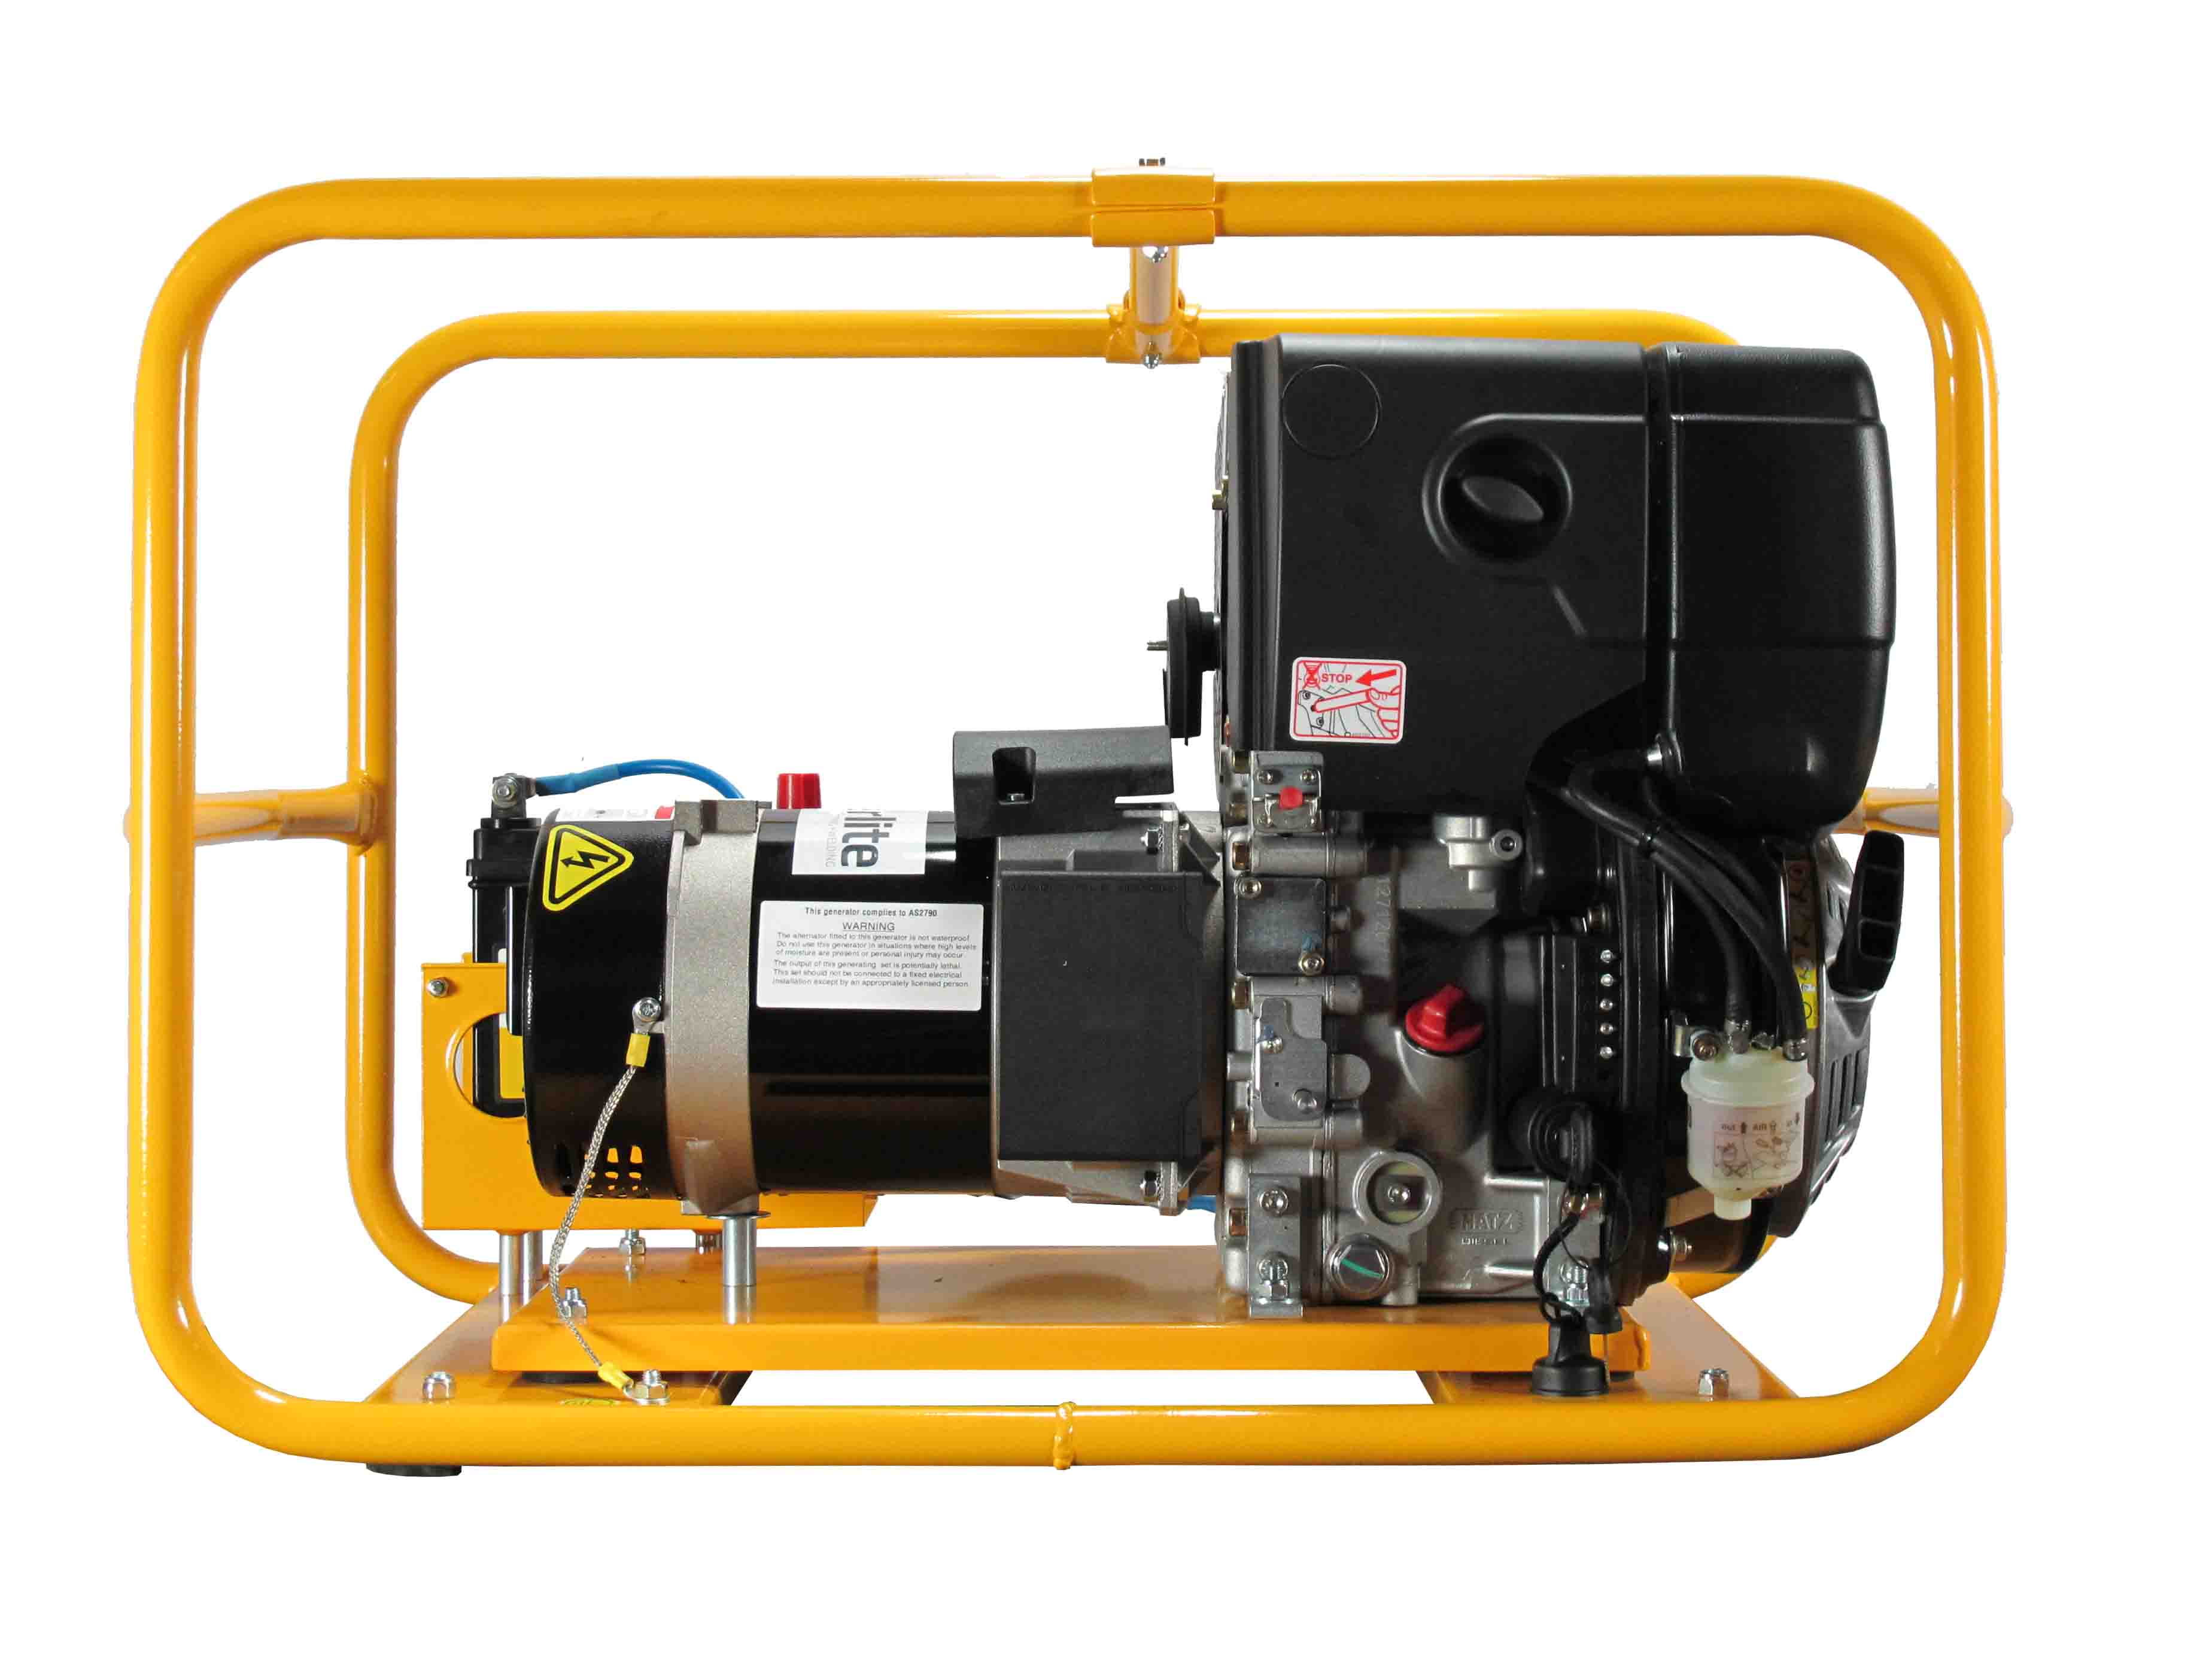 Phzd050e 4 000w Generator With Battery Powerlite Power